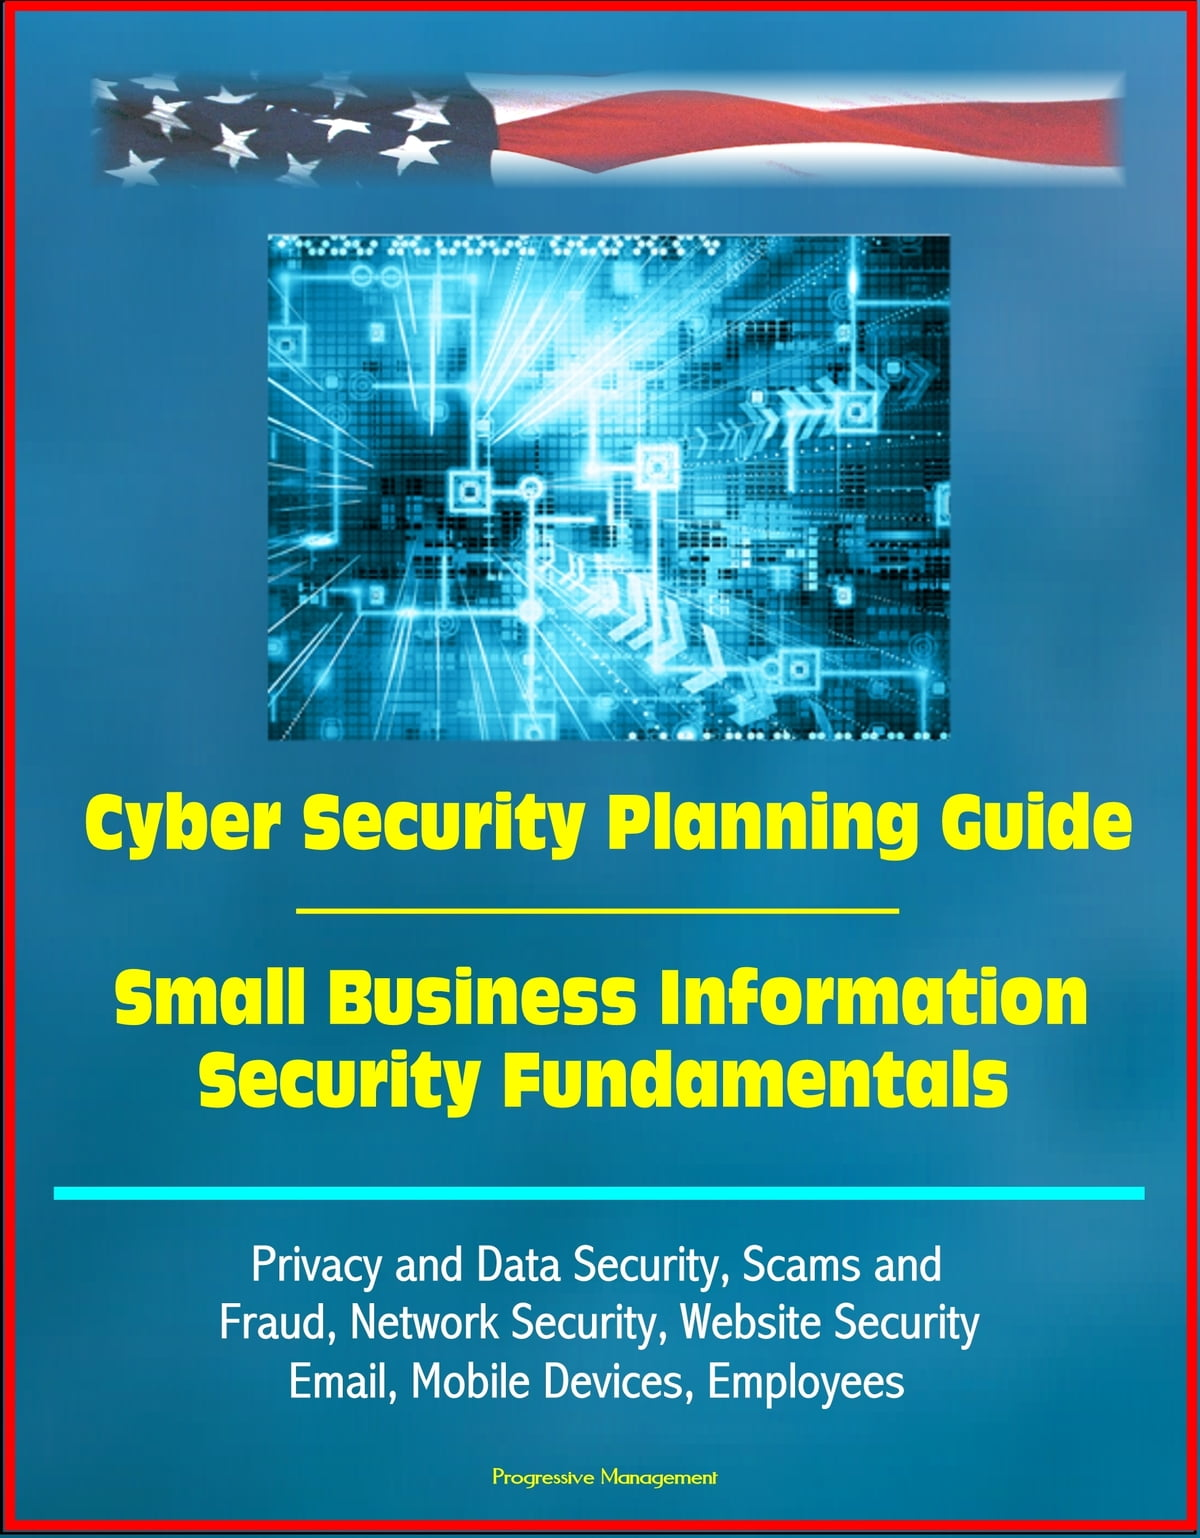 Cyber Security Planning Guide Small Business Information Data Fundamentals Privacy And Scams Fraud Network